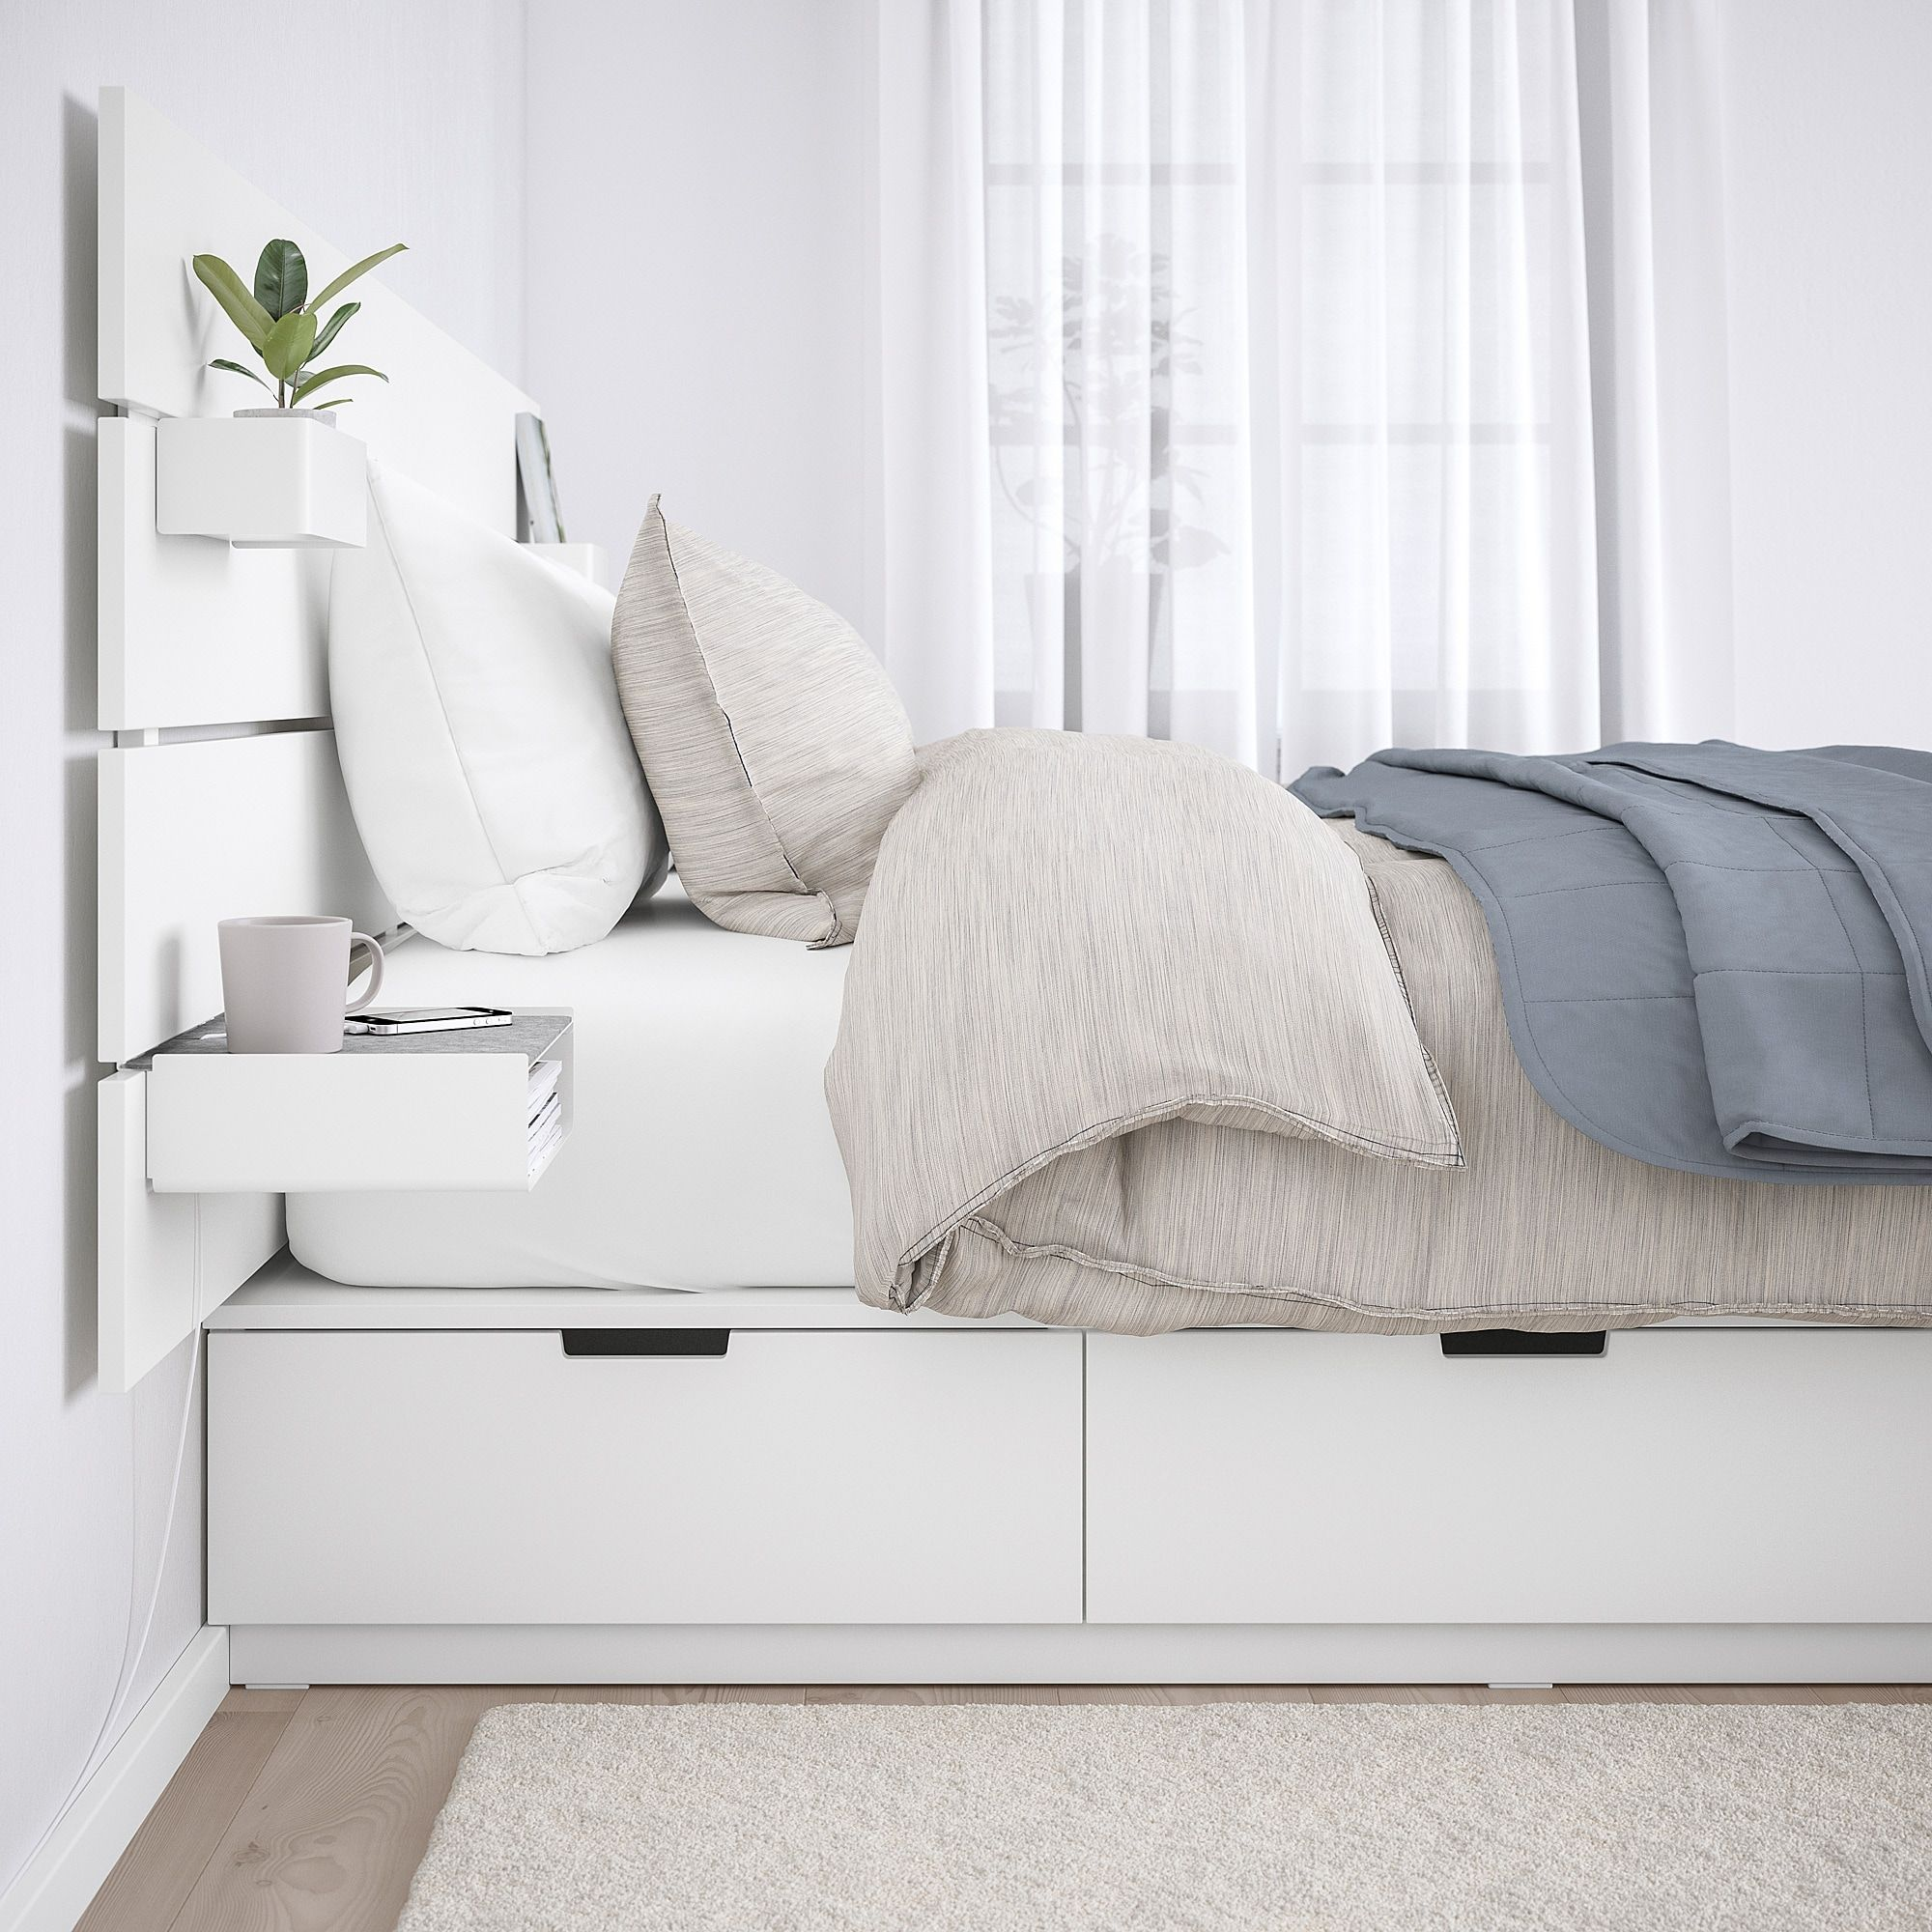 Ikea Nordli Bed With Headboard And Storage White In 2020 Headboards For Beds Bed Frame With Storage White Headboard